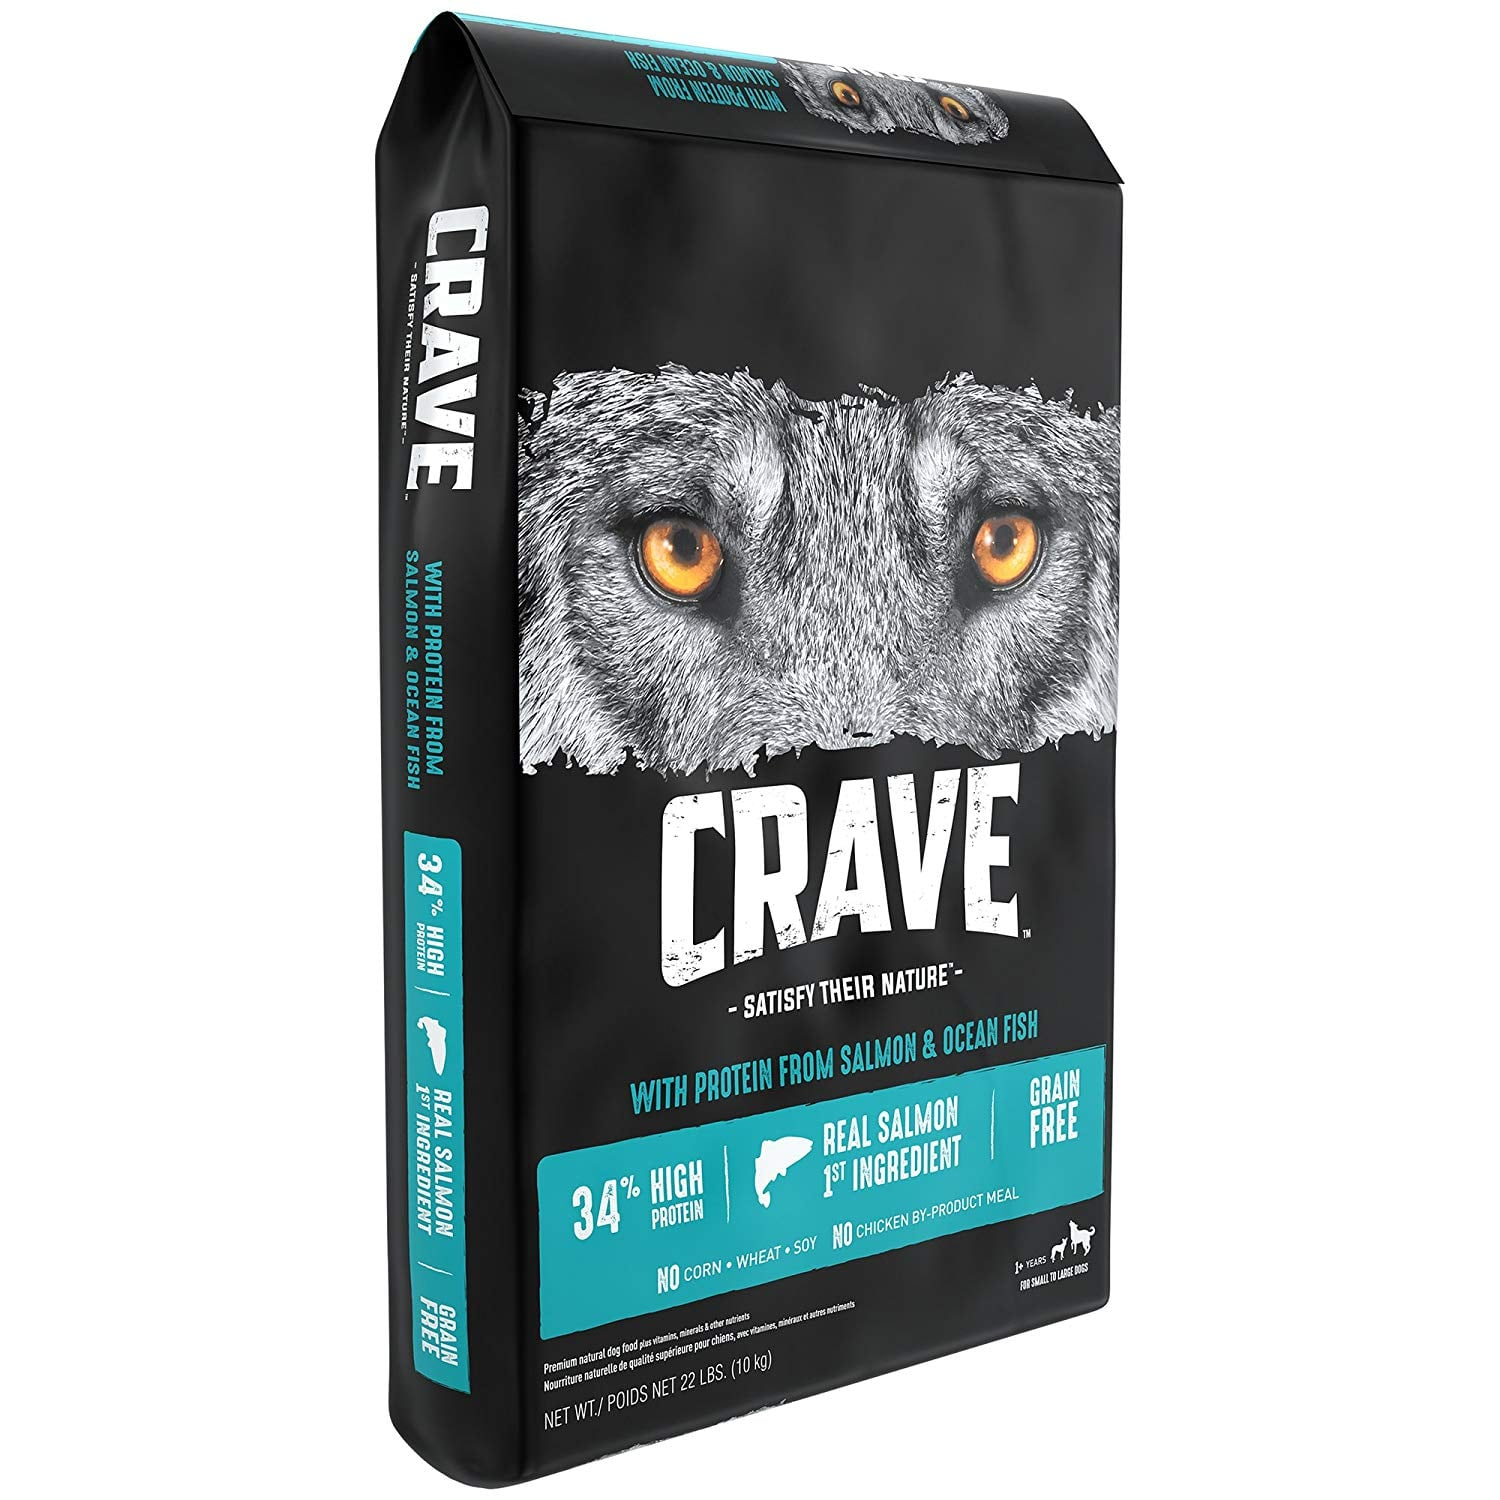 22 lb Crave Adult Dry Dog Food With Protein, Salmon & Ocean Fish, $27.99